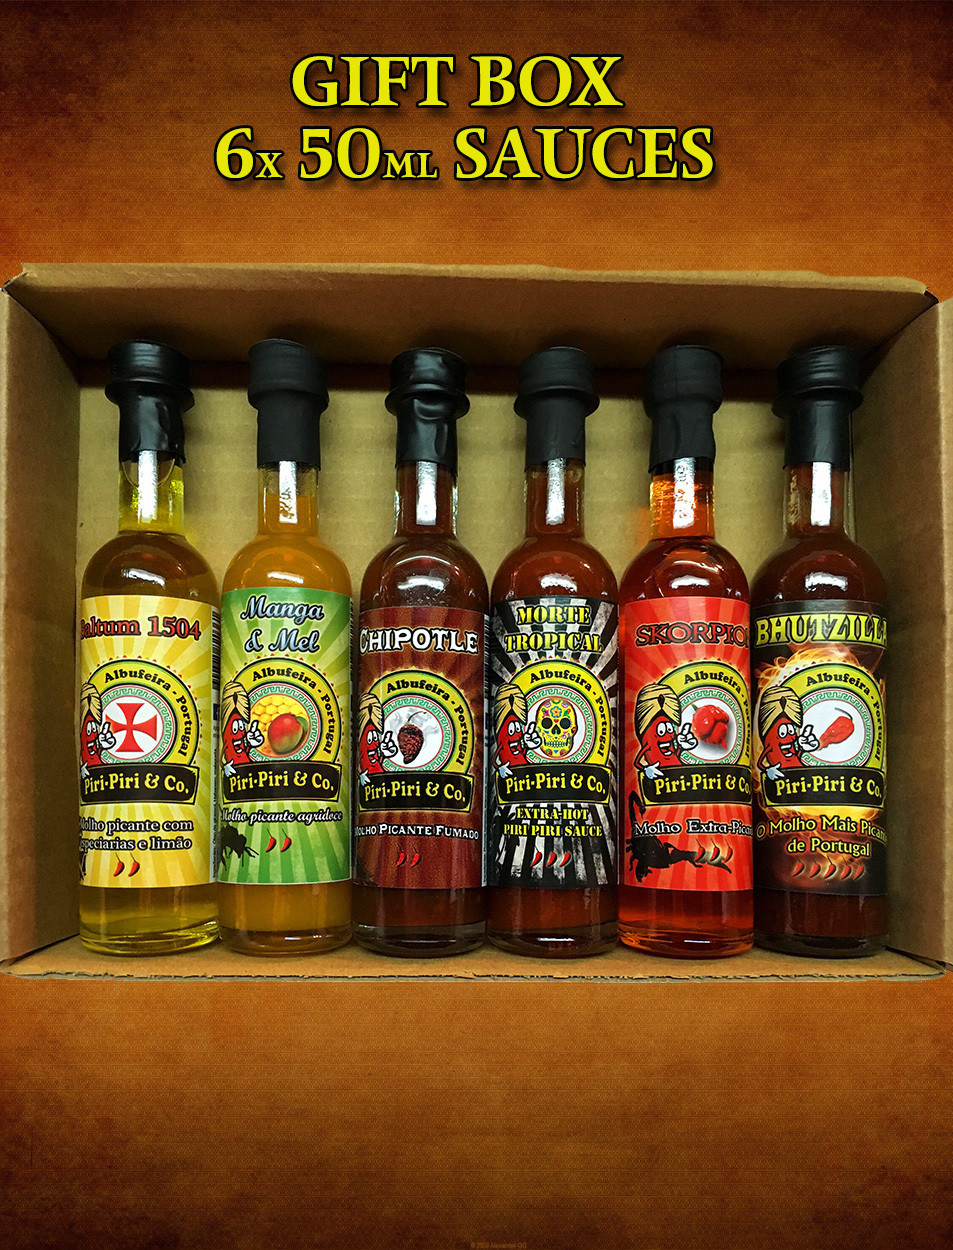 Box set with 6x 50ml sauces